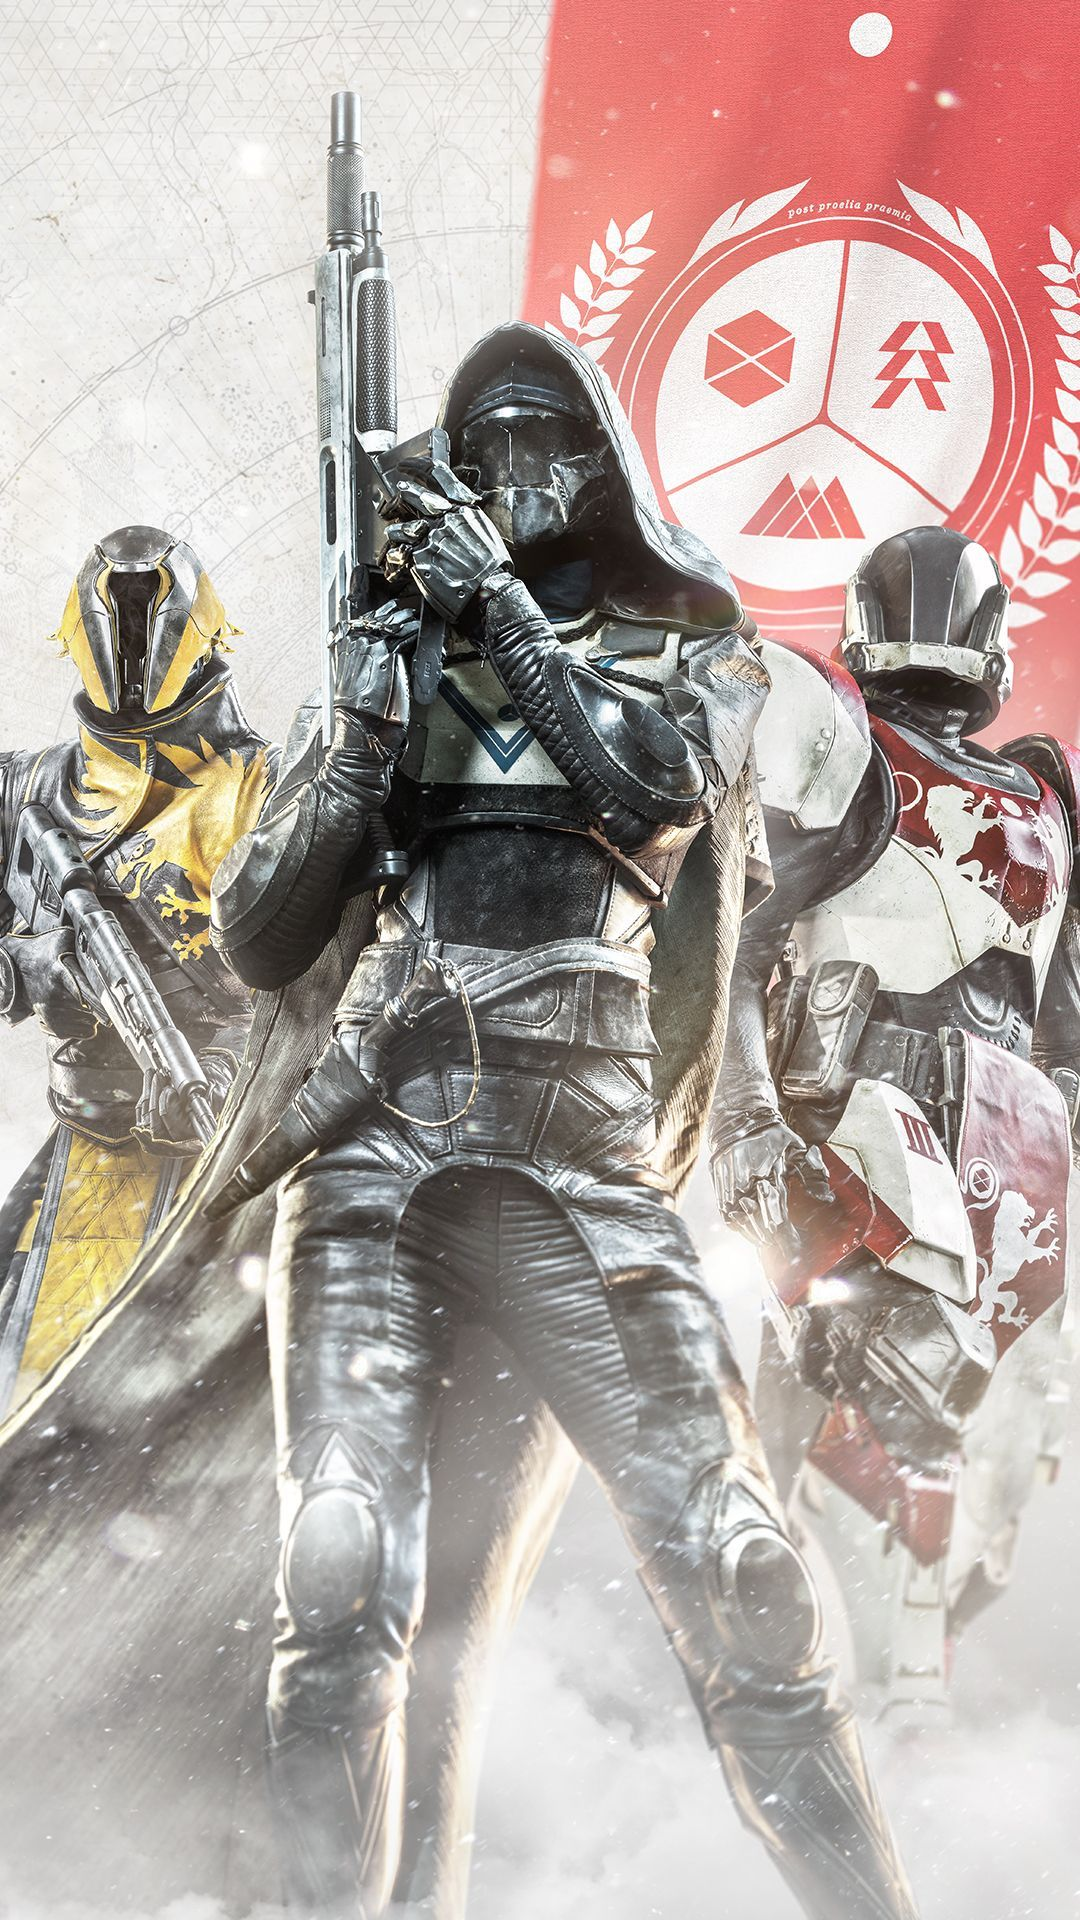 Top 5 Destiny Hd Wallpapers For Your Android Or Iphone Wallpapers Android Iphone Wallpaper Destiny Wallpaper Hd Destiny Backgrounds Destiny Game